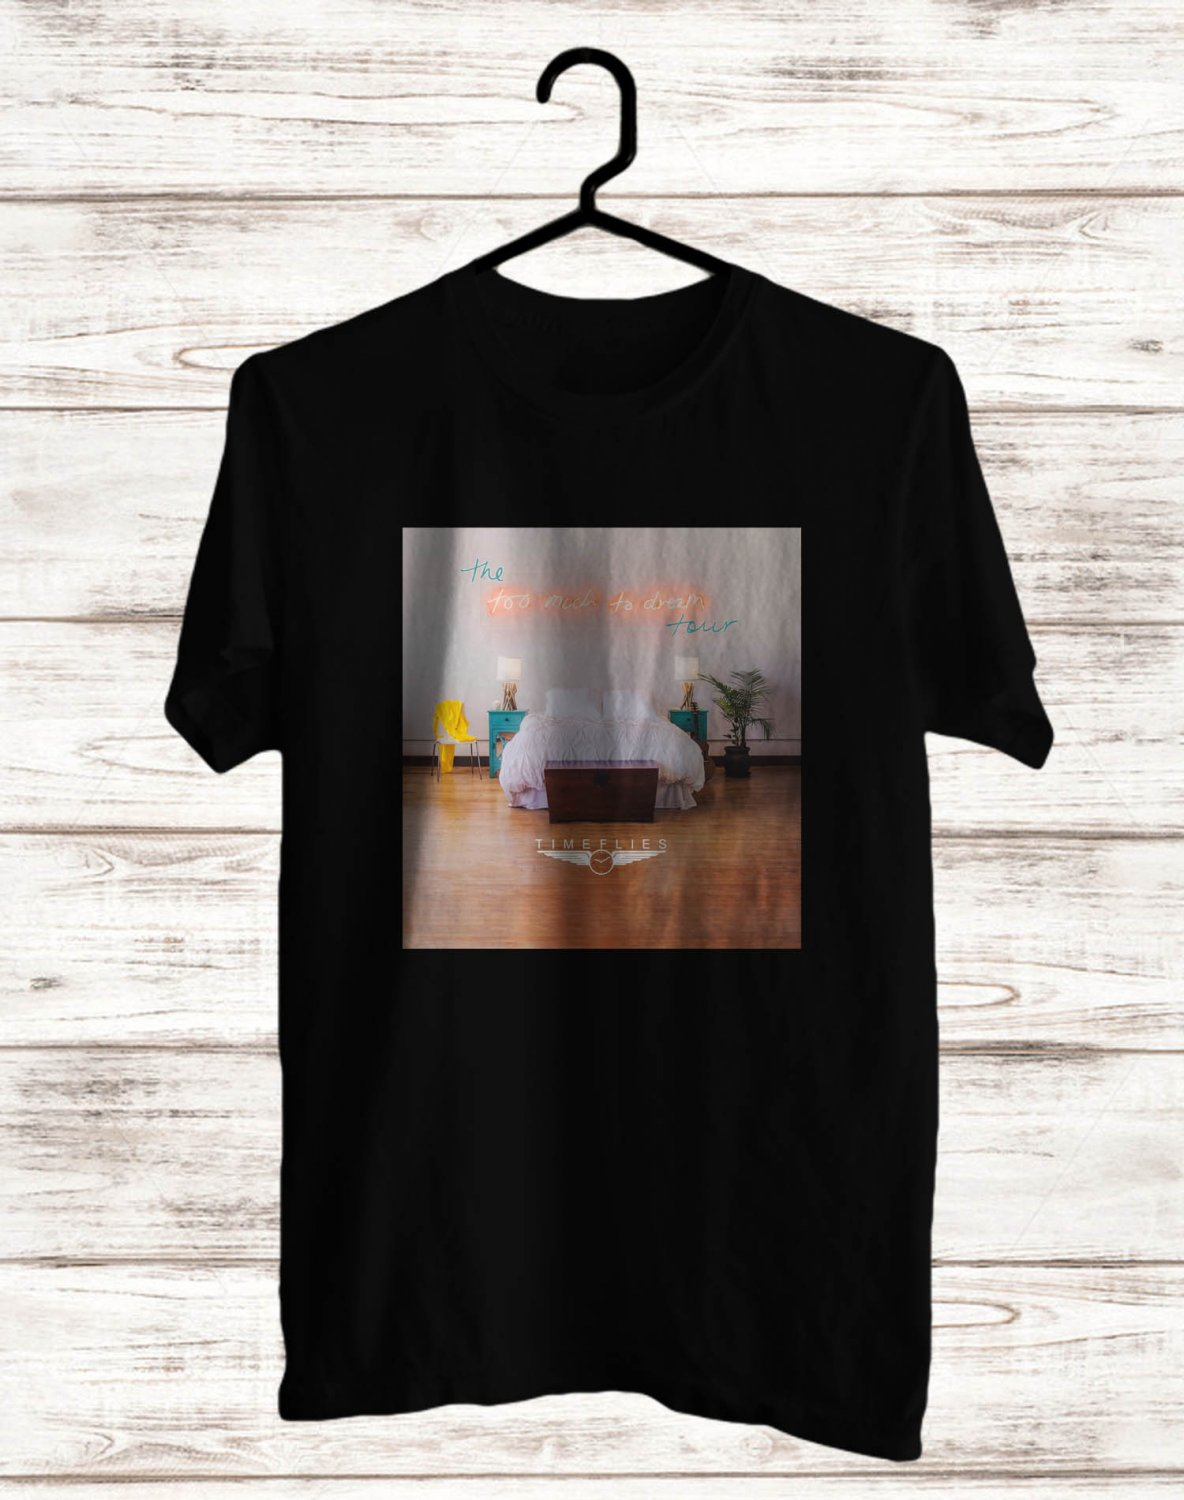 Timeflies Too Much Too Dream Logo Tour 2017 Black Tee's Front Side by Complexart z3